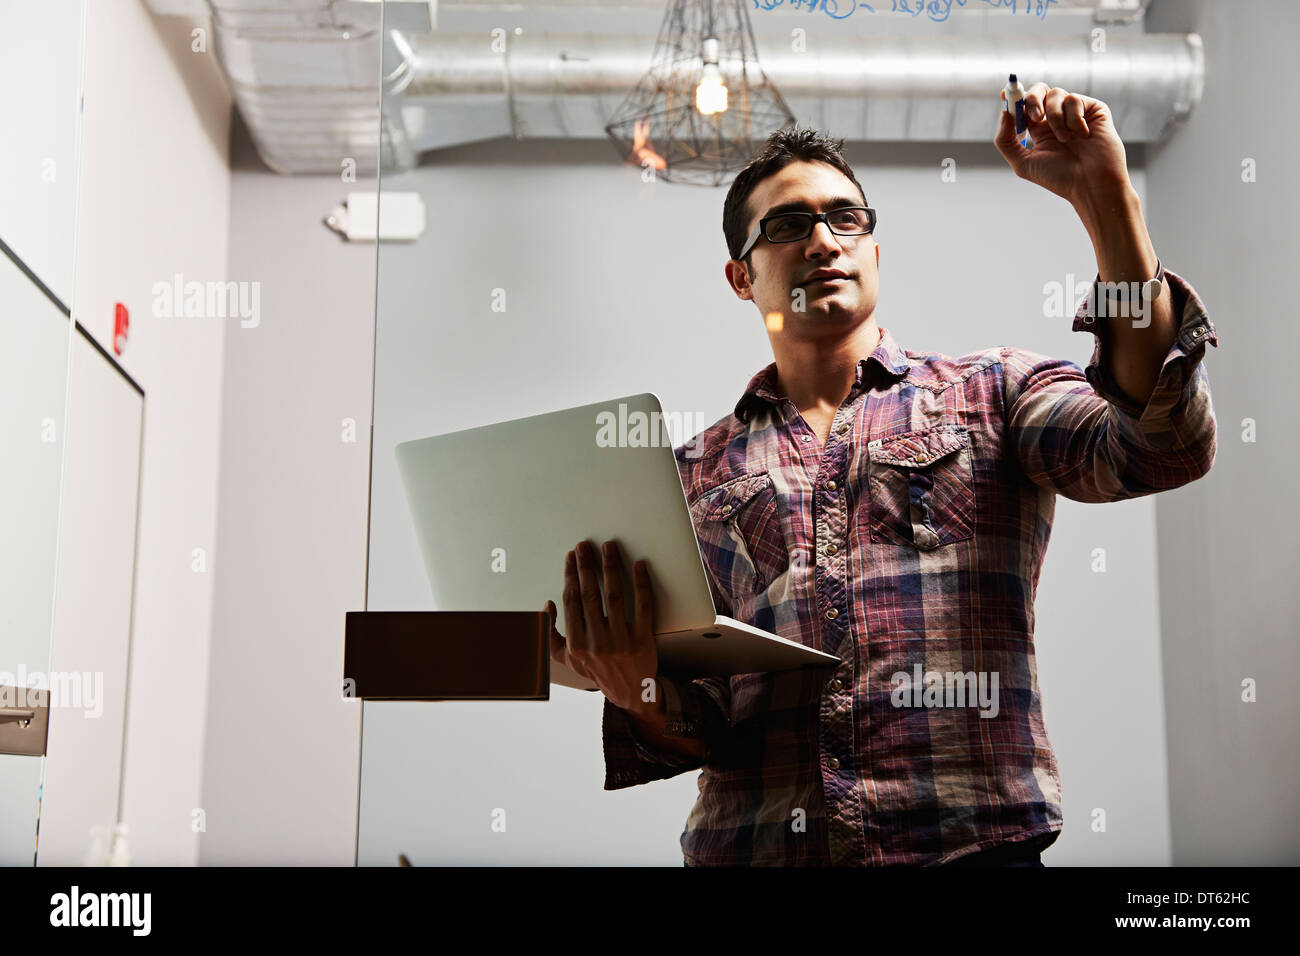 Young man holding laptop writing on glass - Stock Image